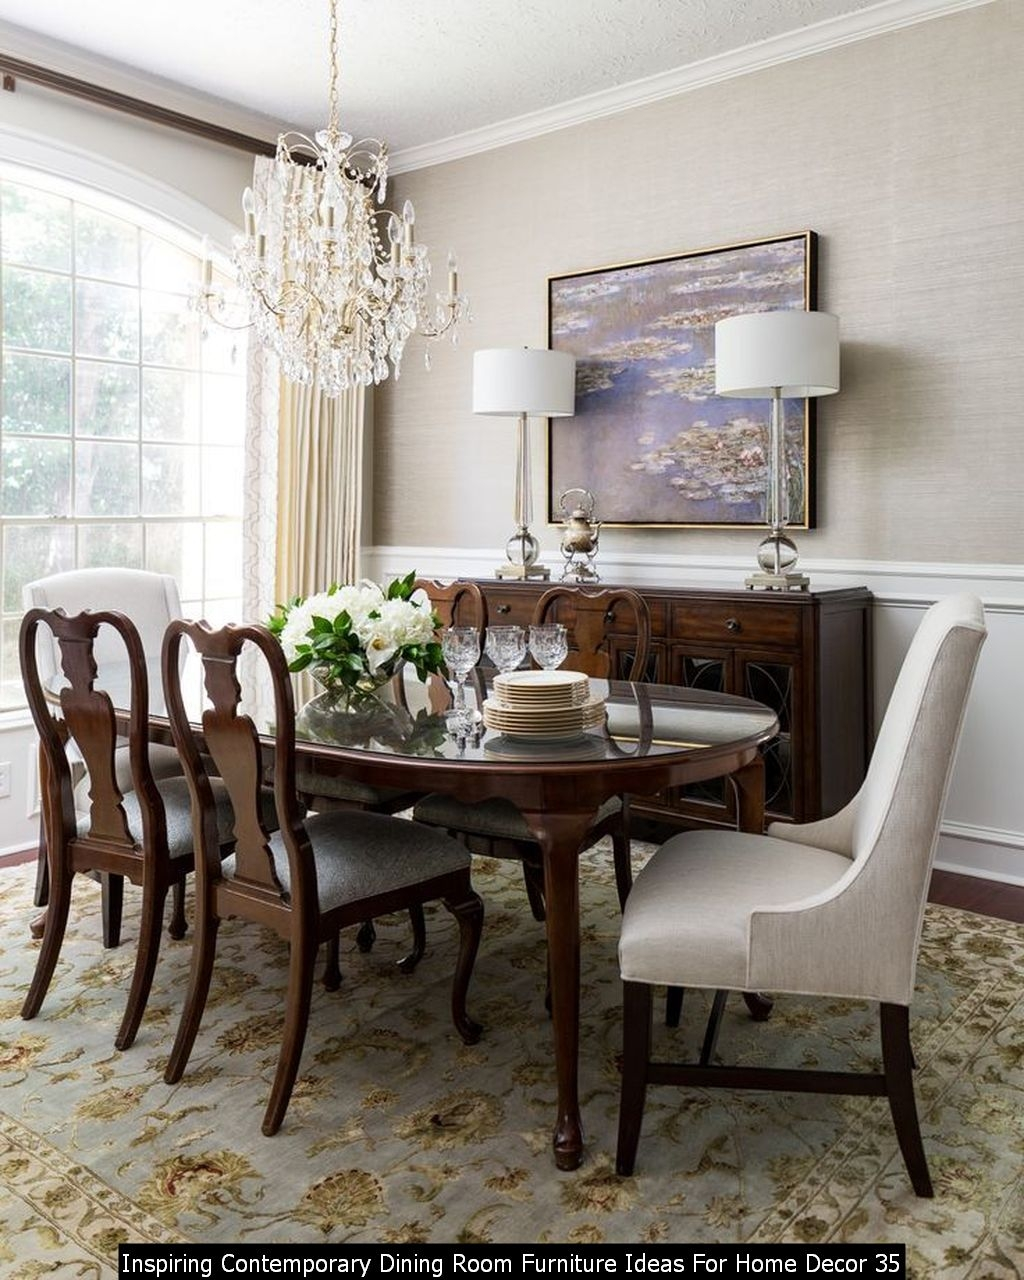 Inspiring Contemporary Dining Room Furniture Ideas For Home Decor 35